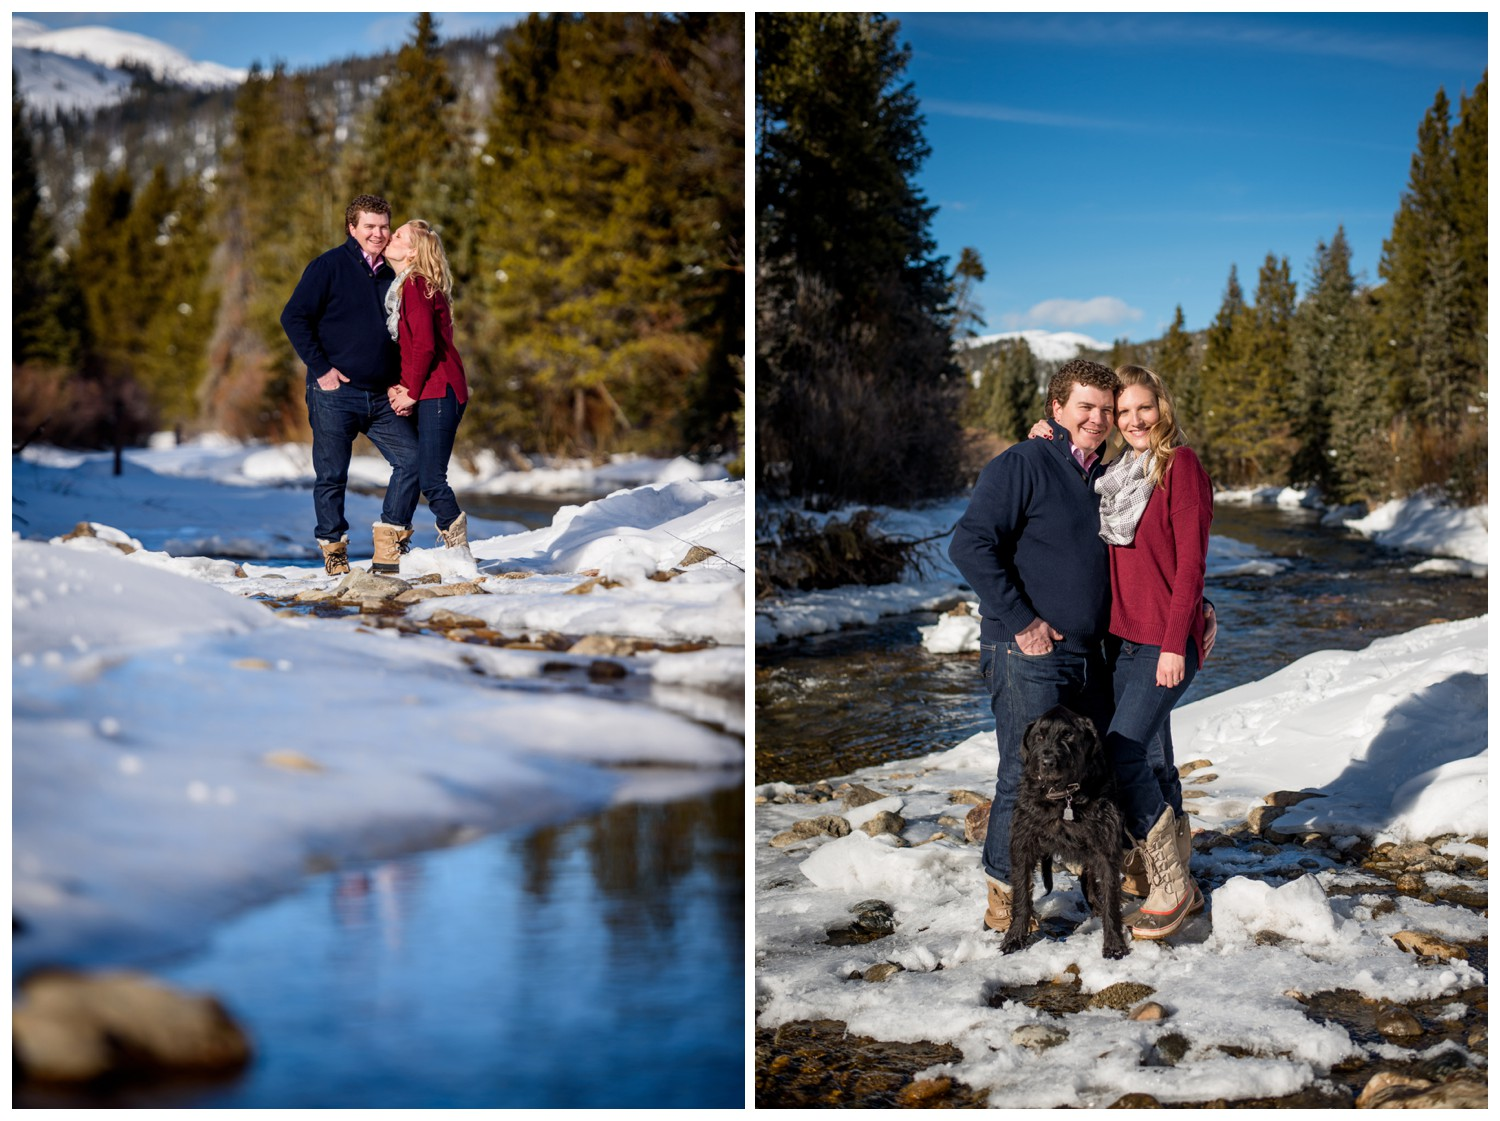 sapphire-point-colorado-winter-engagement-photography-_0013.jpg